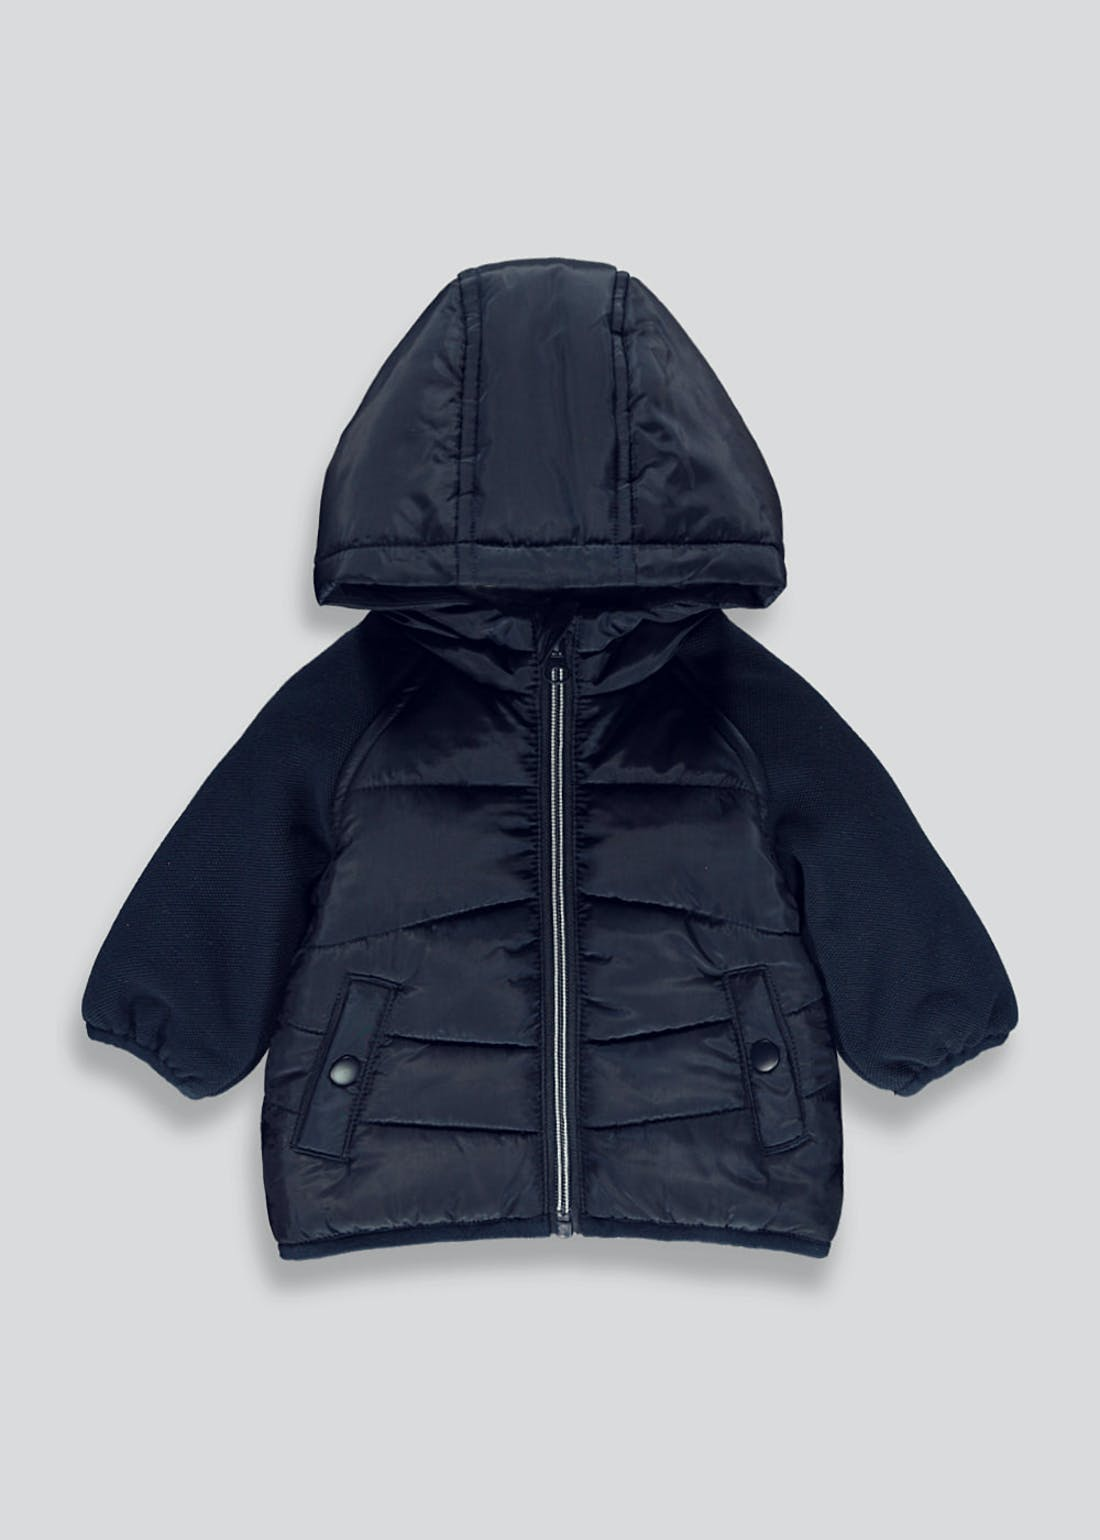 Unisex Navy Hooded Coat (Tiny Baby-18mths)